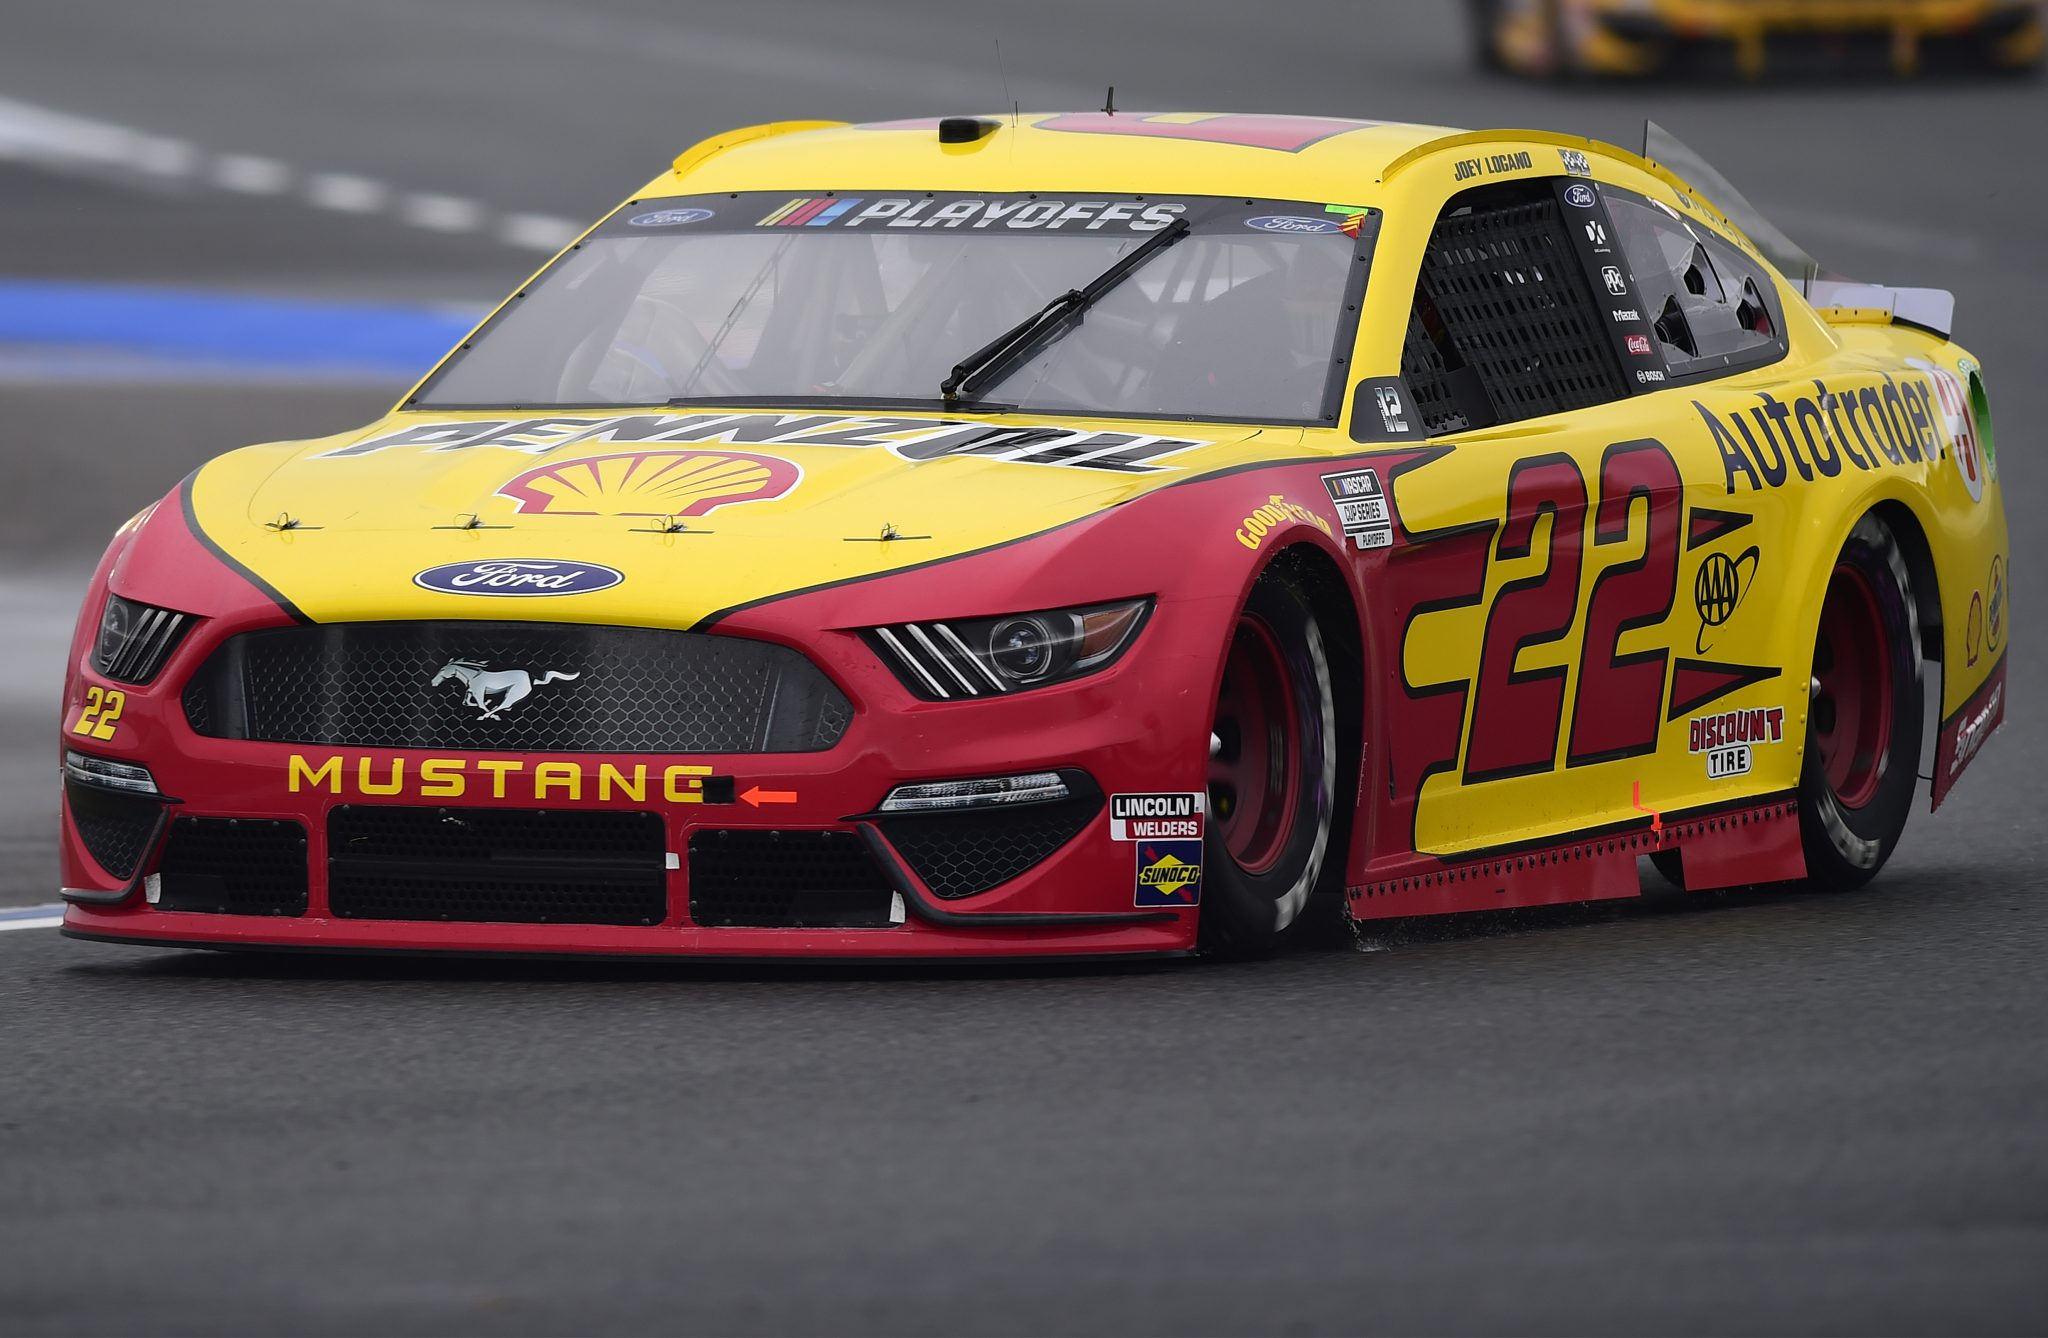 CONCORD, NORTH CAROLINA - OCTOBER 11: Joey Logano, driver of the #22 Shell Pennzoil/Autotrader Ford, drives during the NASCAR Cup Series Bank of America ROVAL 400 at Charlotte Motor Speedway on October 11, 2020 in Concord, North Carolina. (Photo by Jared C. Tilton/Getty Images) | Getty Images